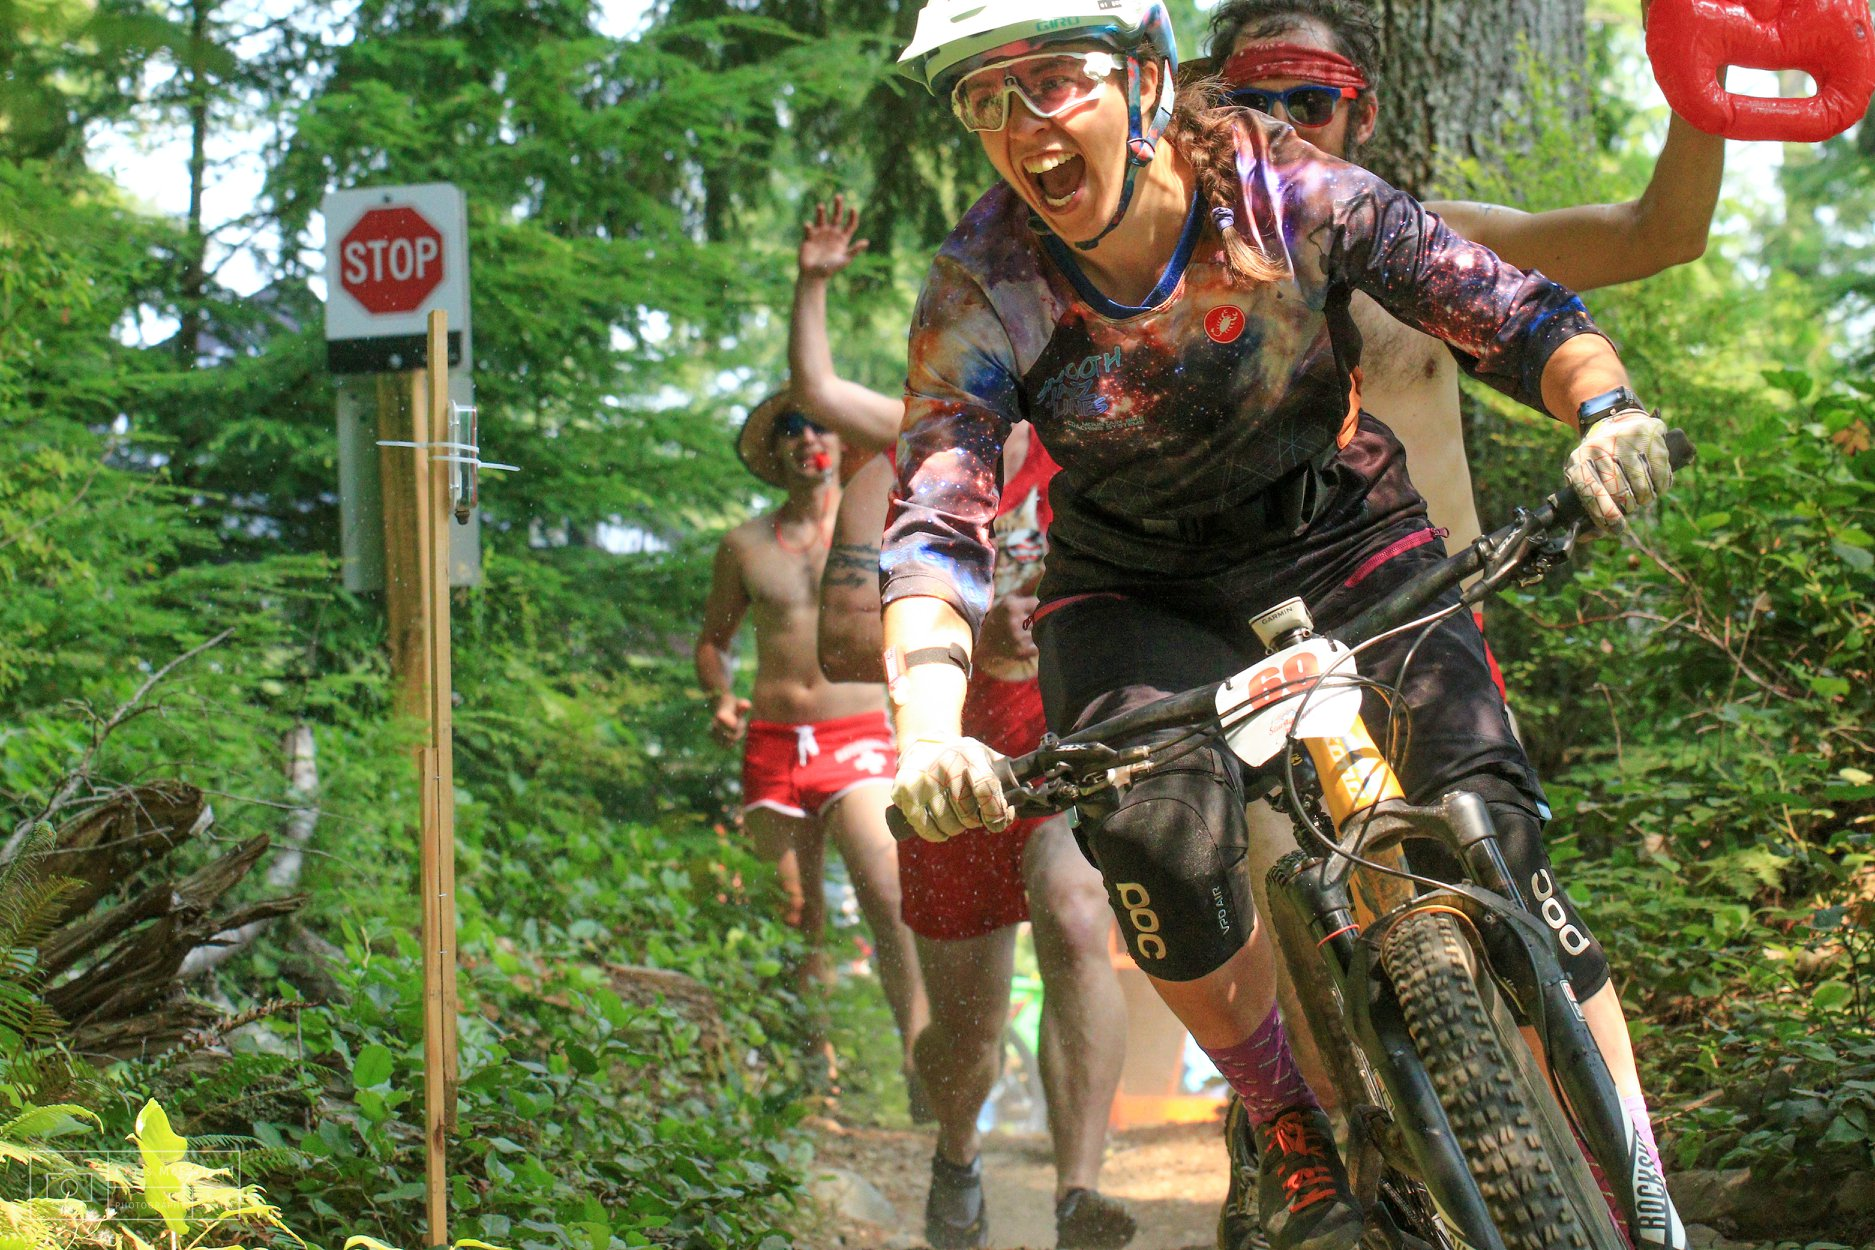 Women's Race Series: It's So Sturdy, So Dirty, and Undoubtedly Enduro! - Singletracks Mountain Bike News